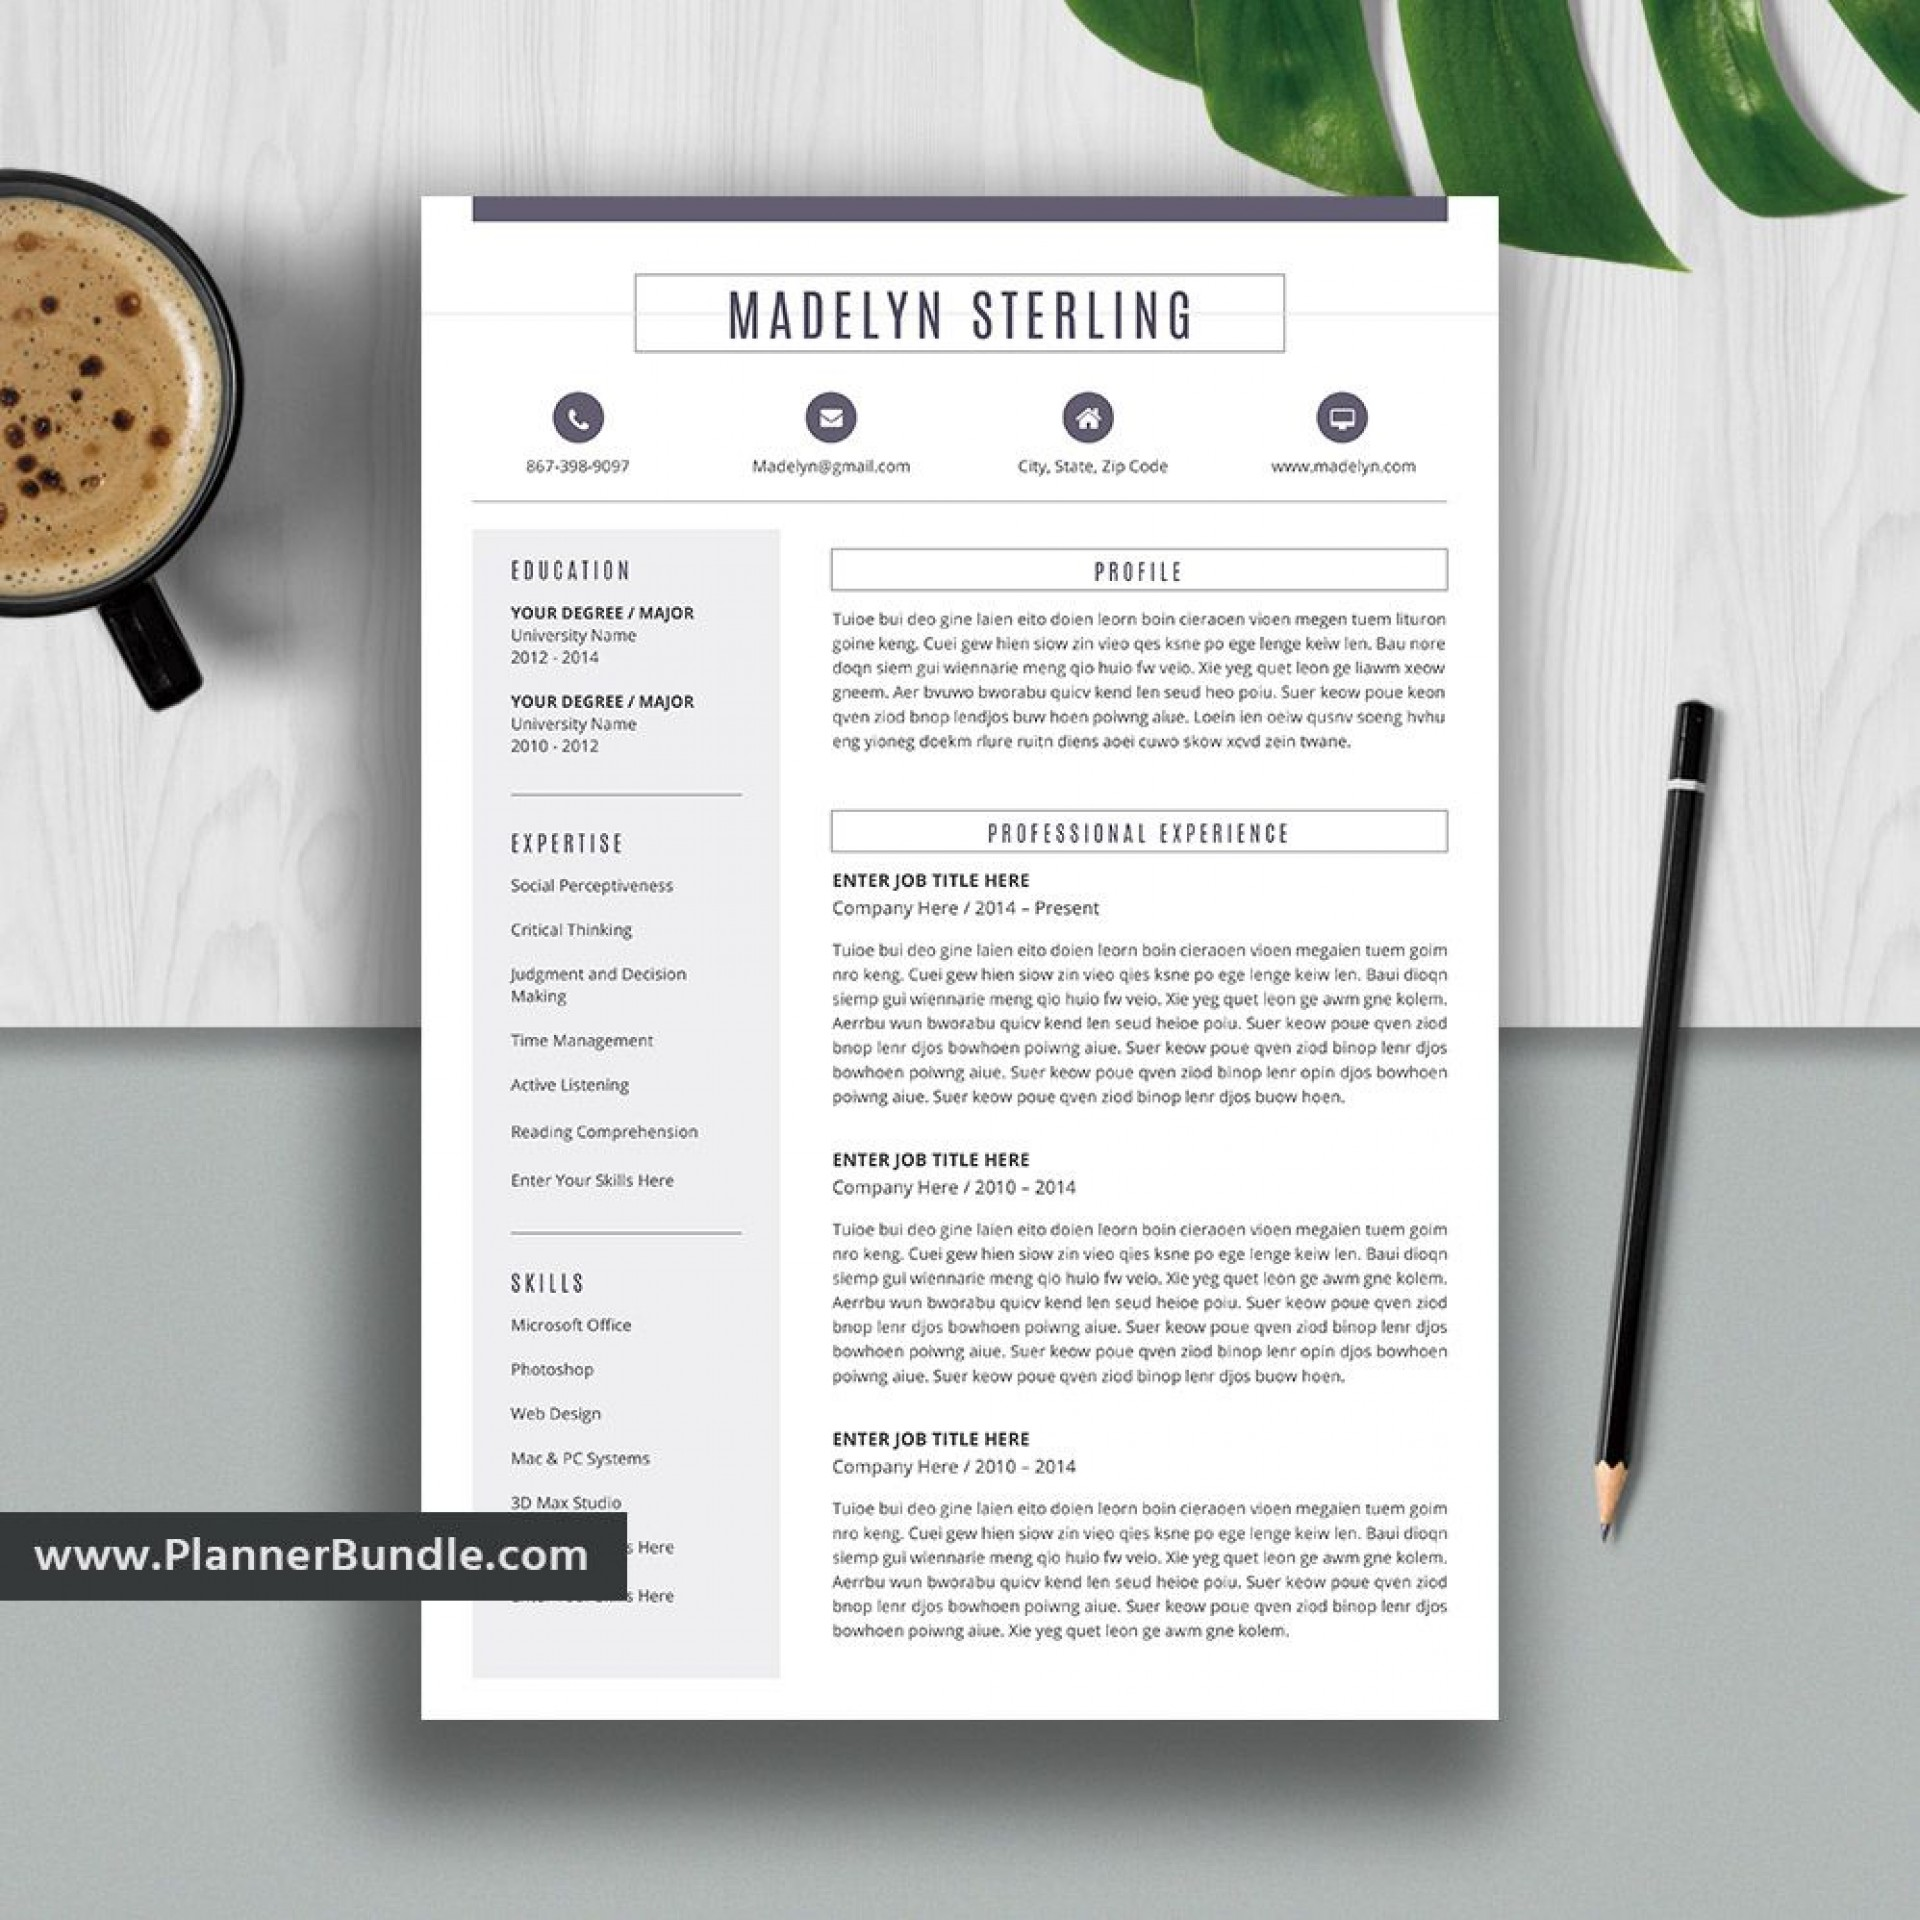 005 Staggering Resume Template Microsoft Word 2007 High Definition  In Office M1920